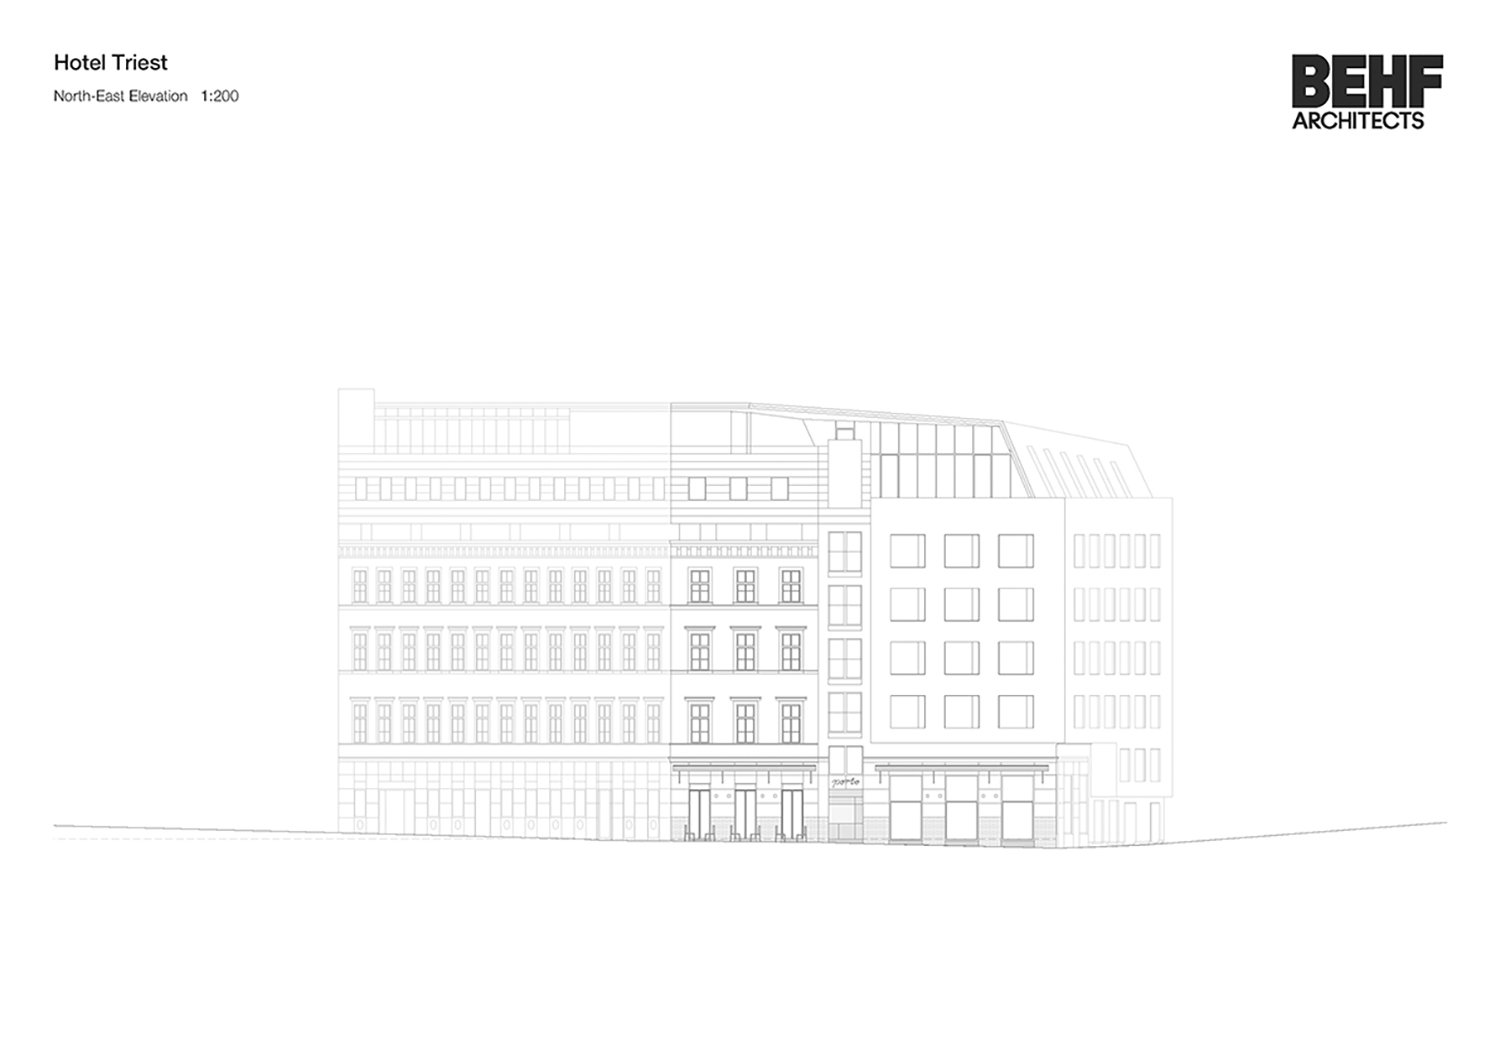 Hotel Triest North-East Elevation BEHFArchitects}